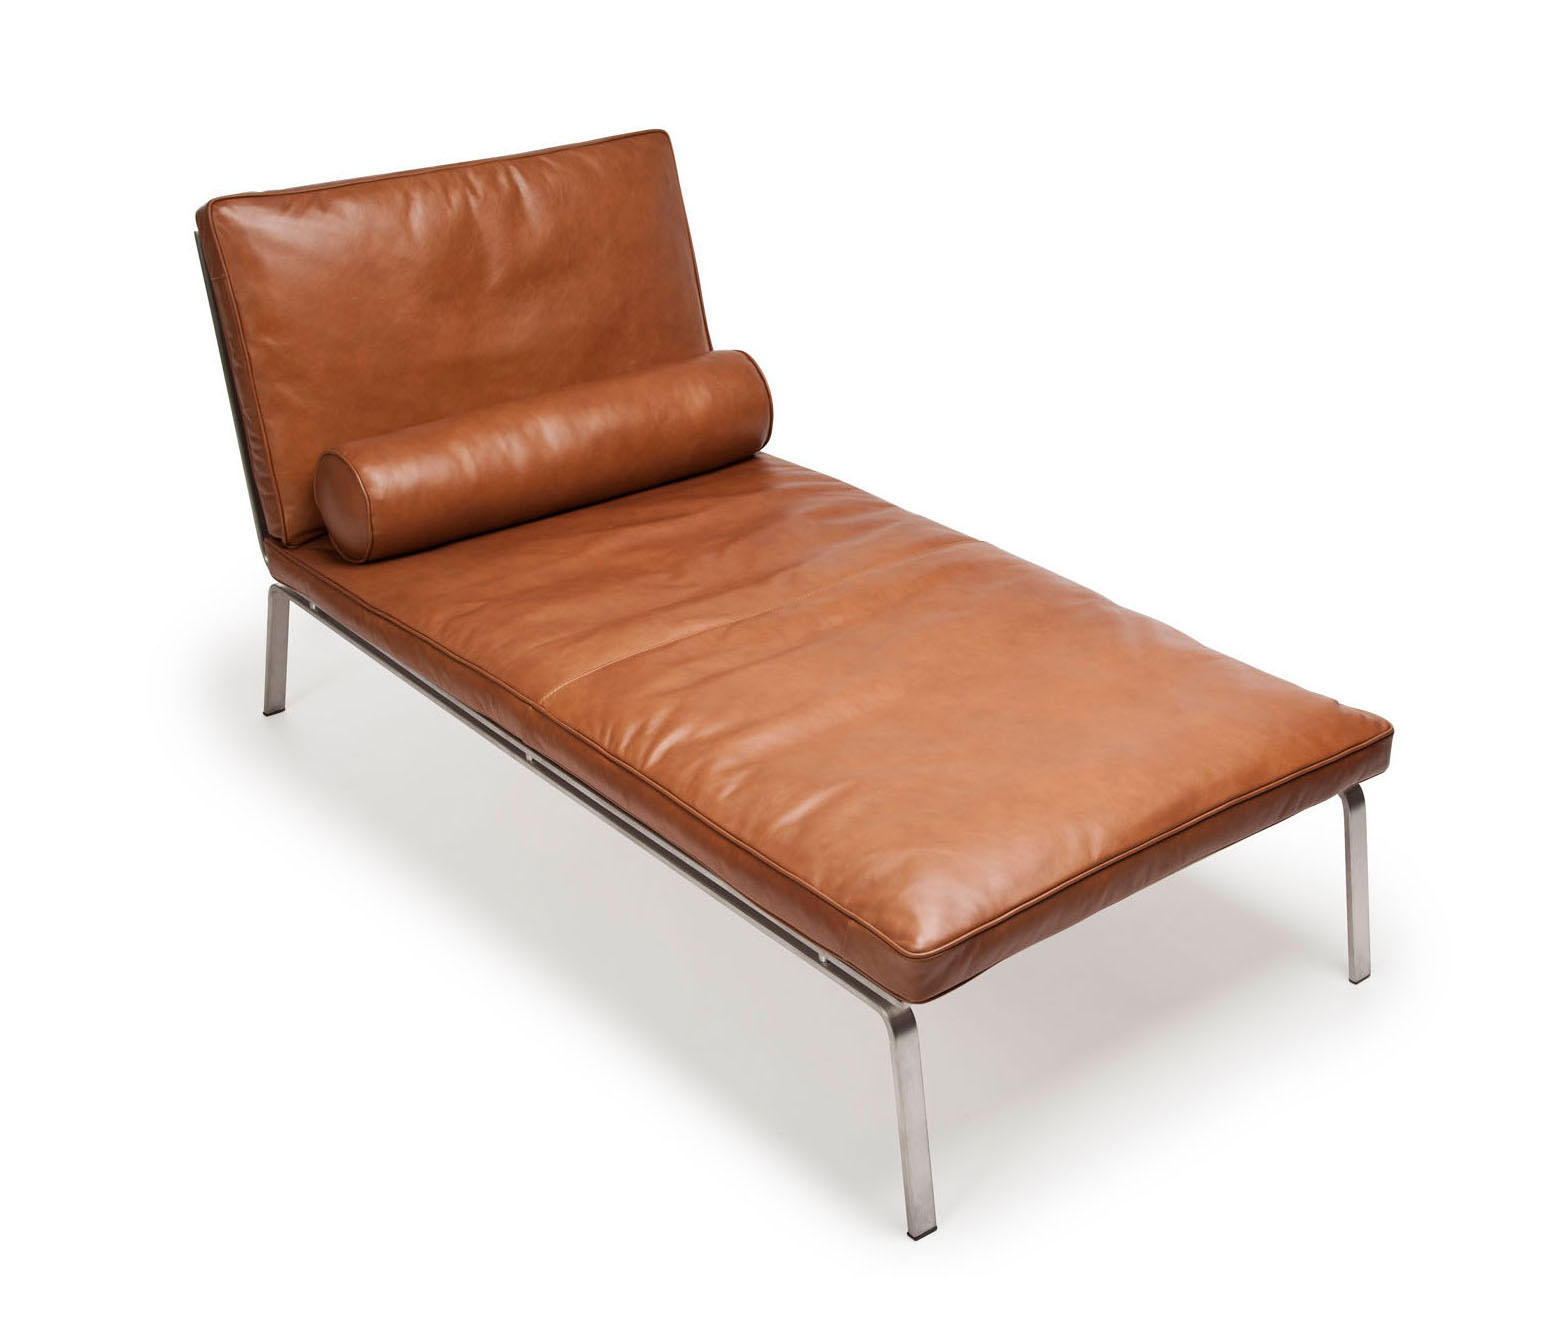 Man chaise longue chaise longues from norr11 architonic for Chaise longue 2 personnes